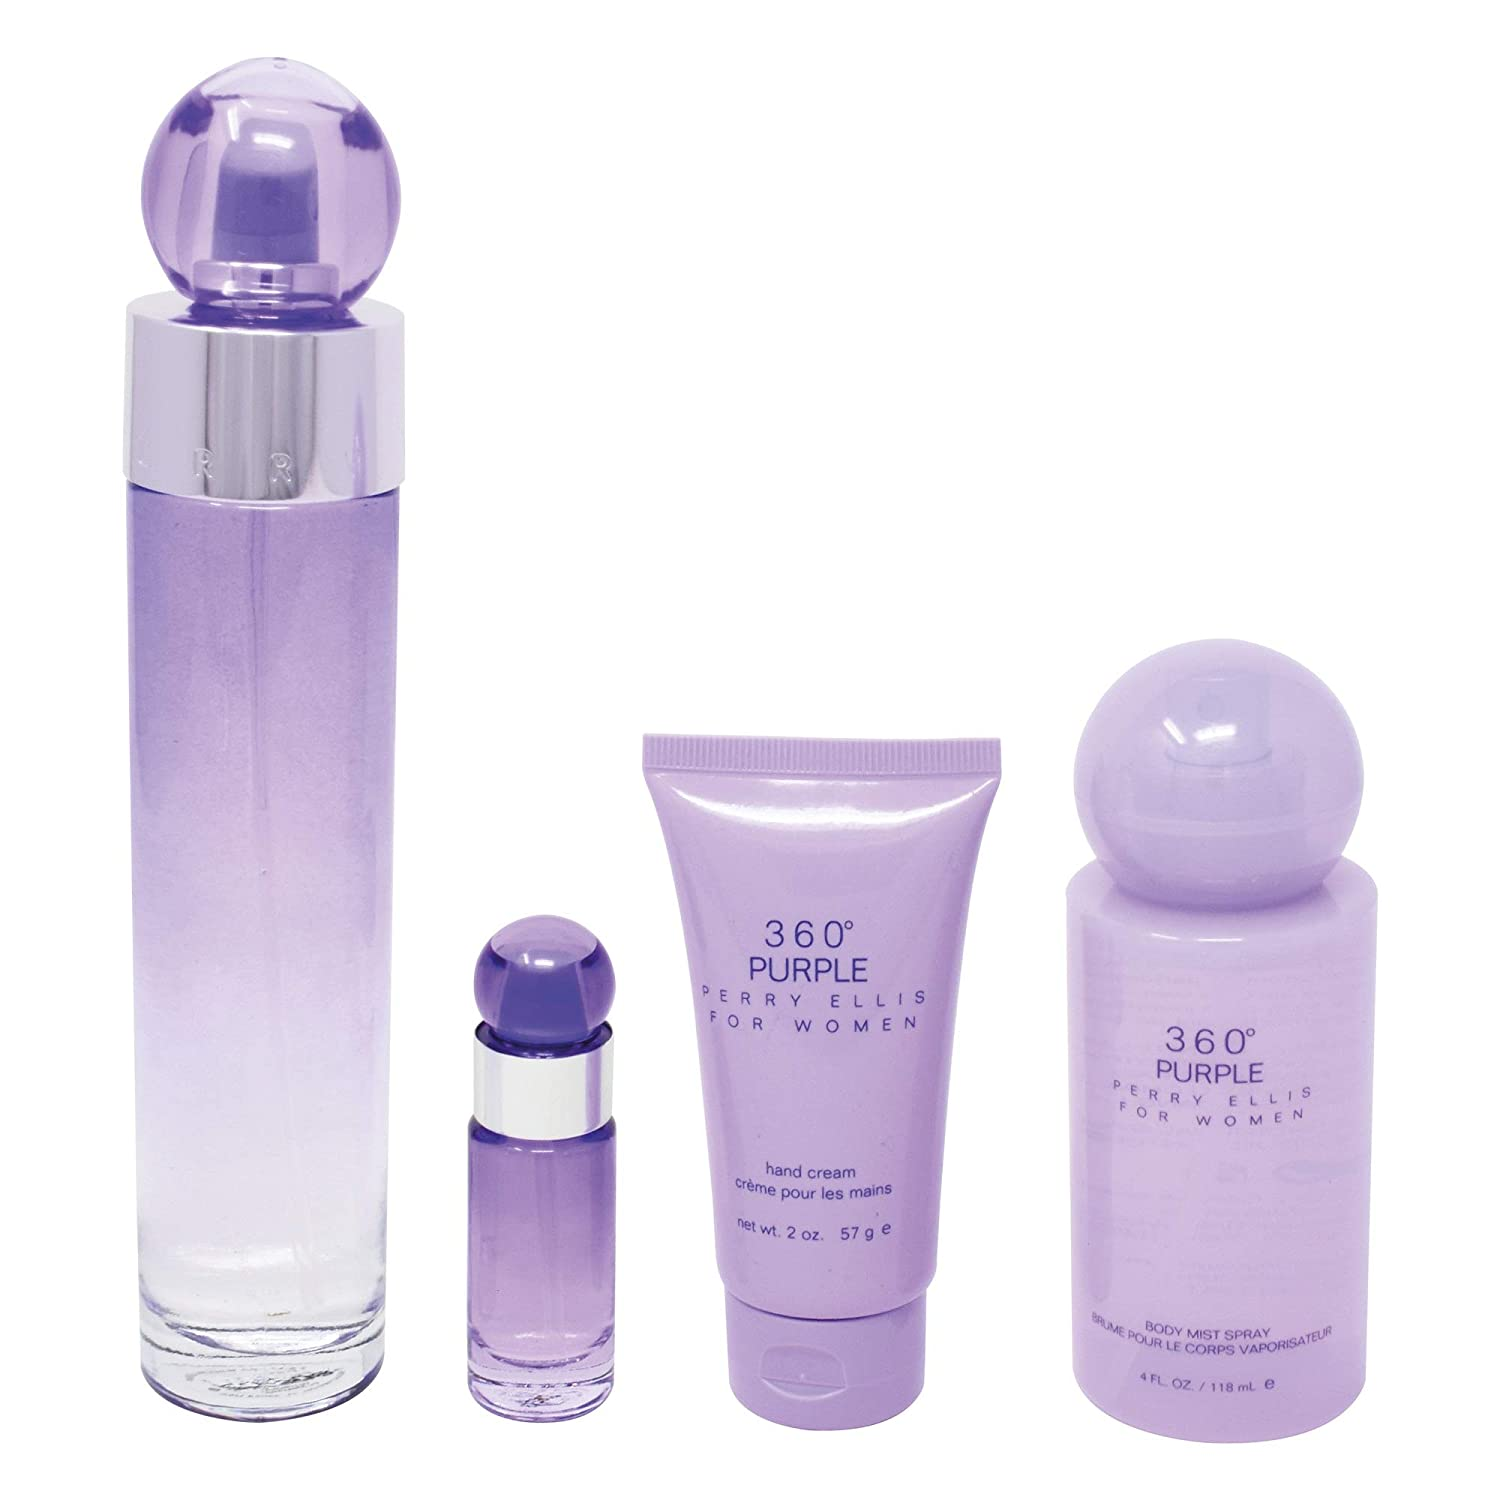 Amazon.com : Perry Ellis 360 Purple by Perry Ellis Gift Set ...